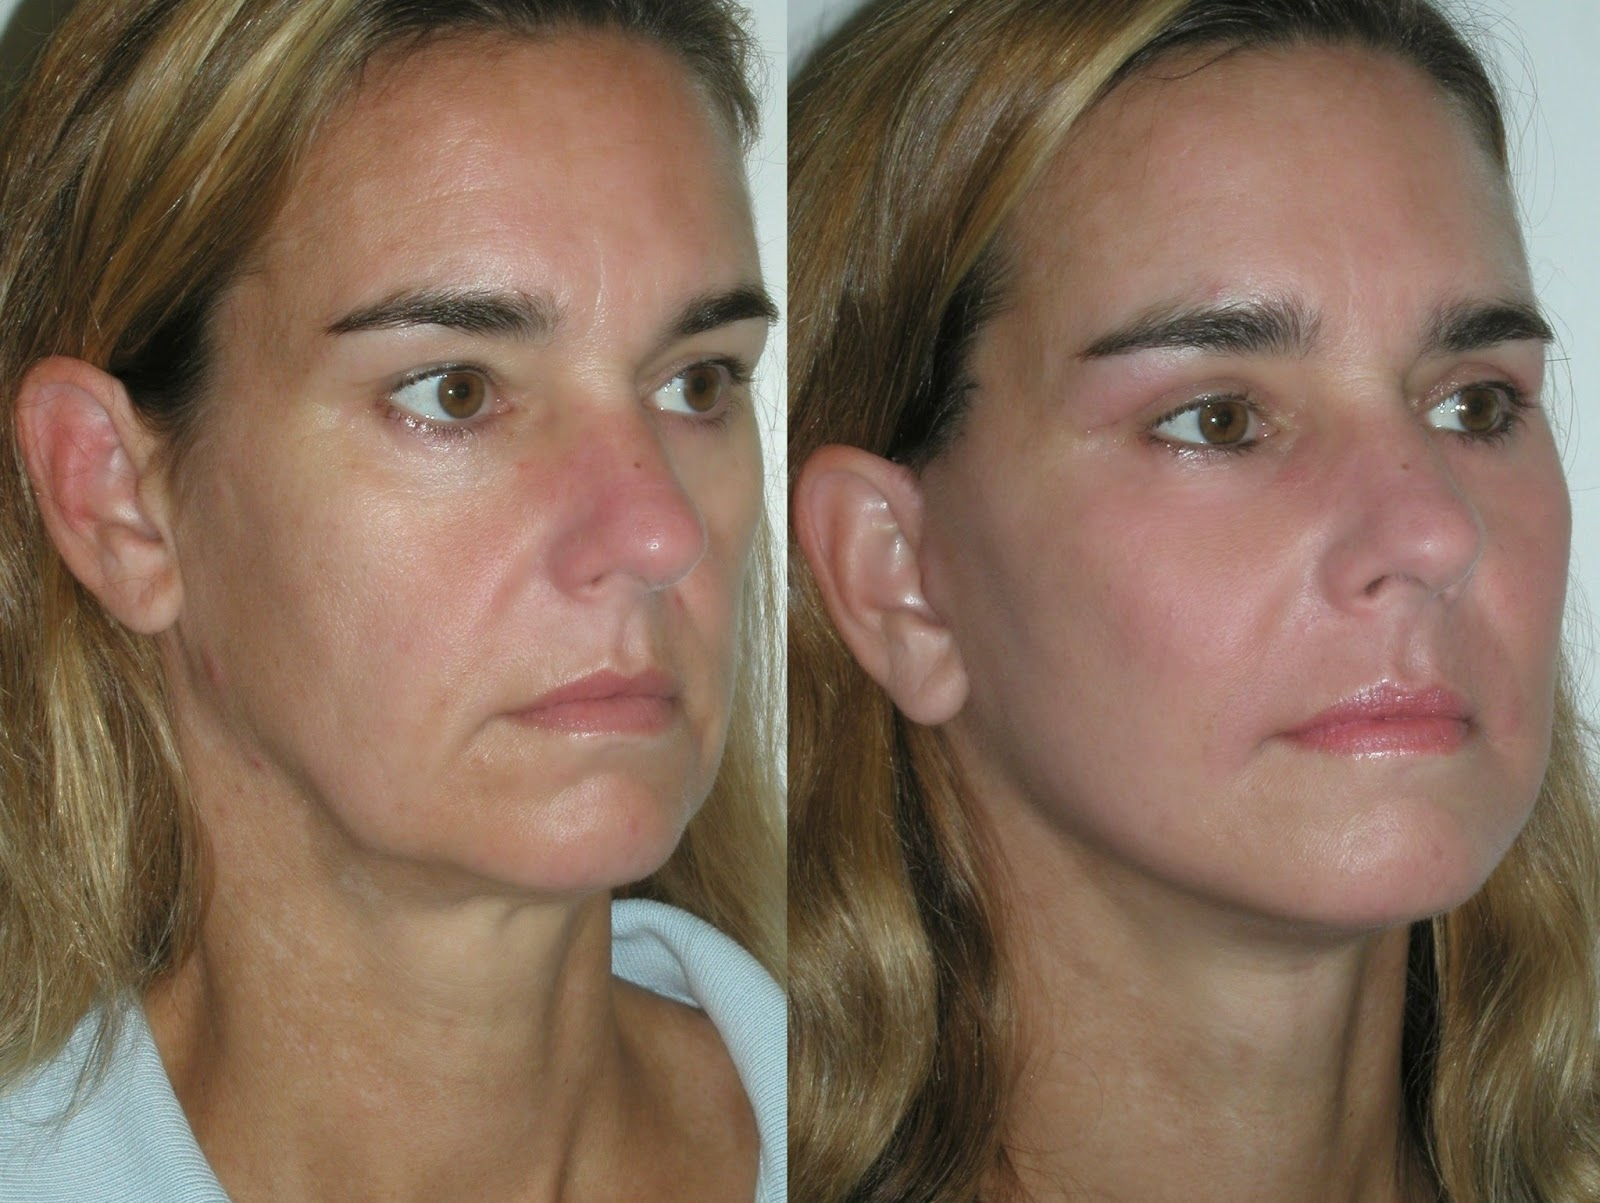 How To Look Younger With Facial Toning And Exercises